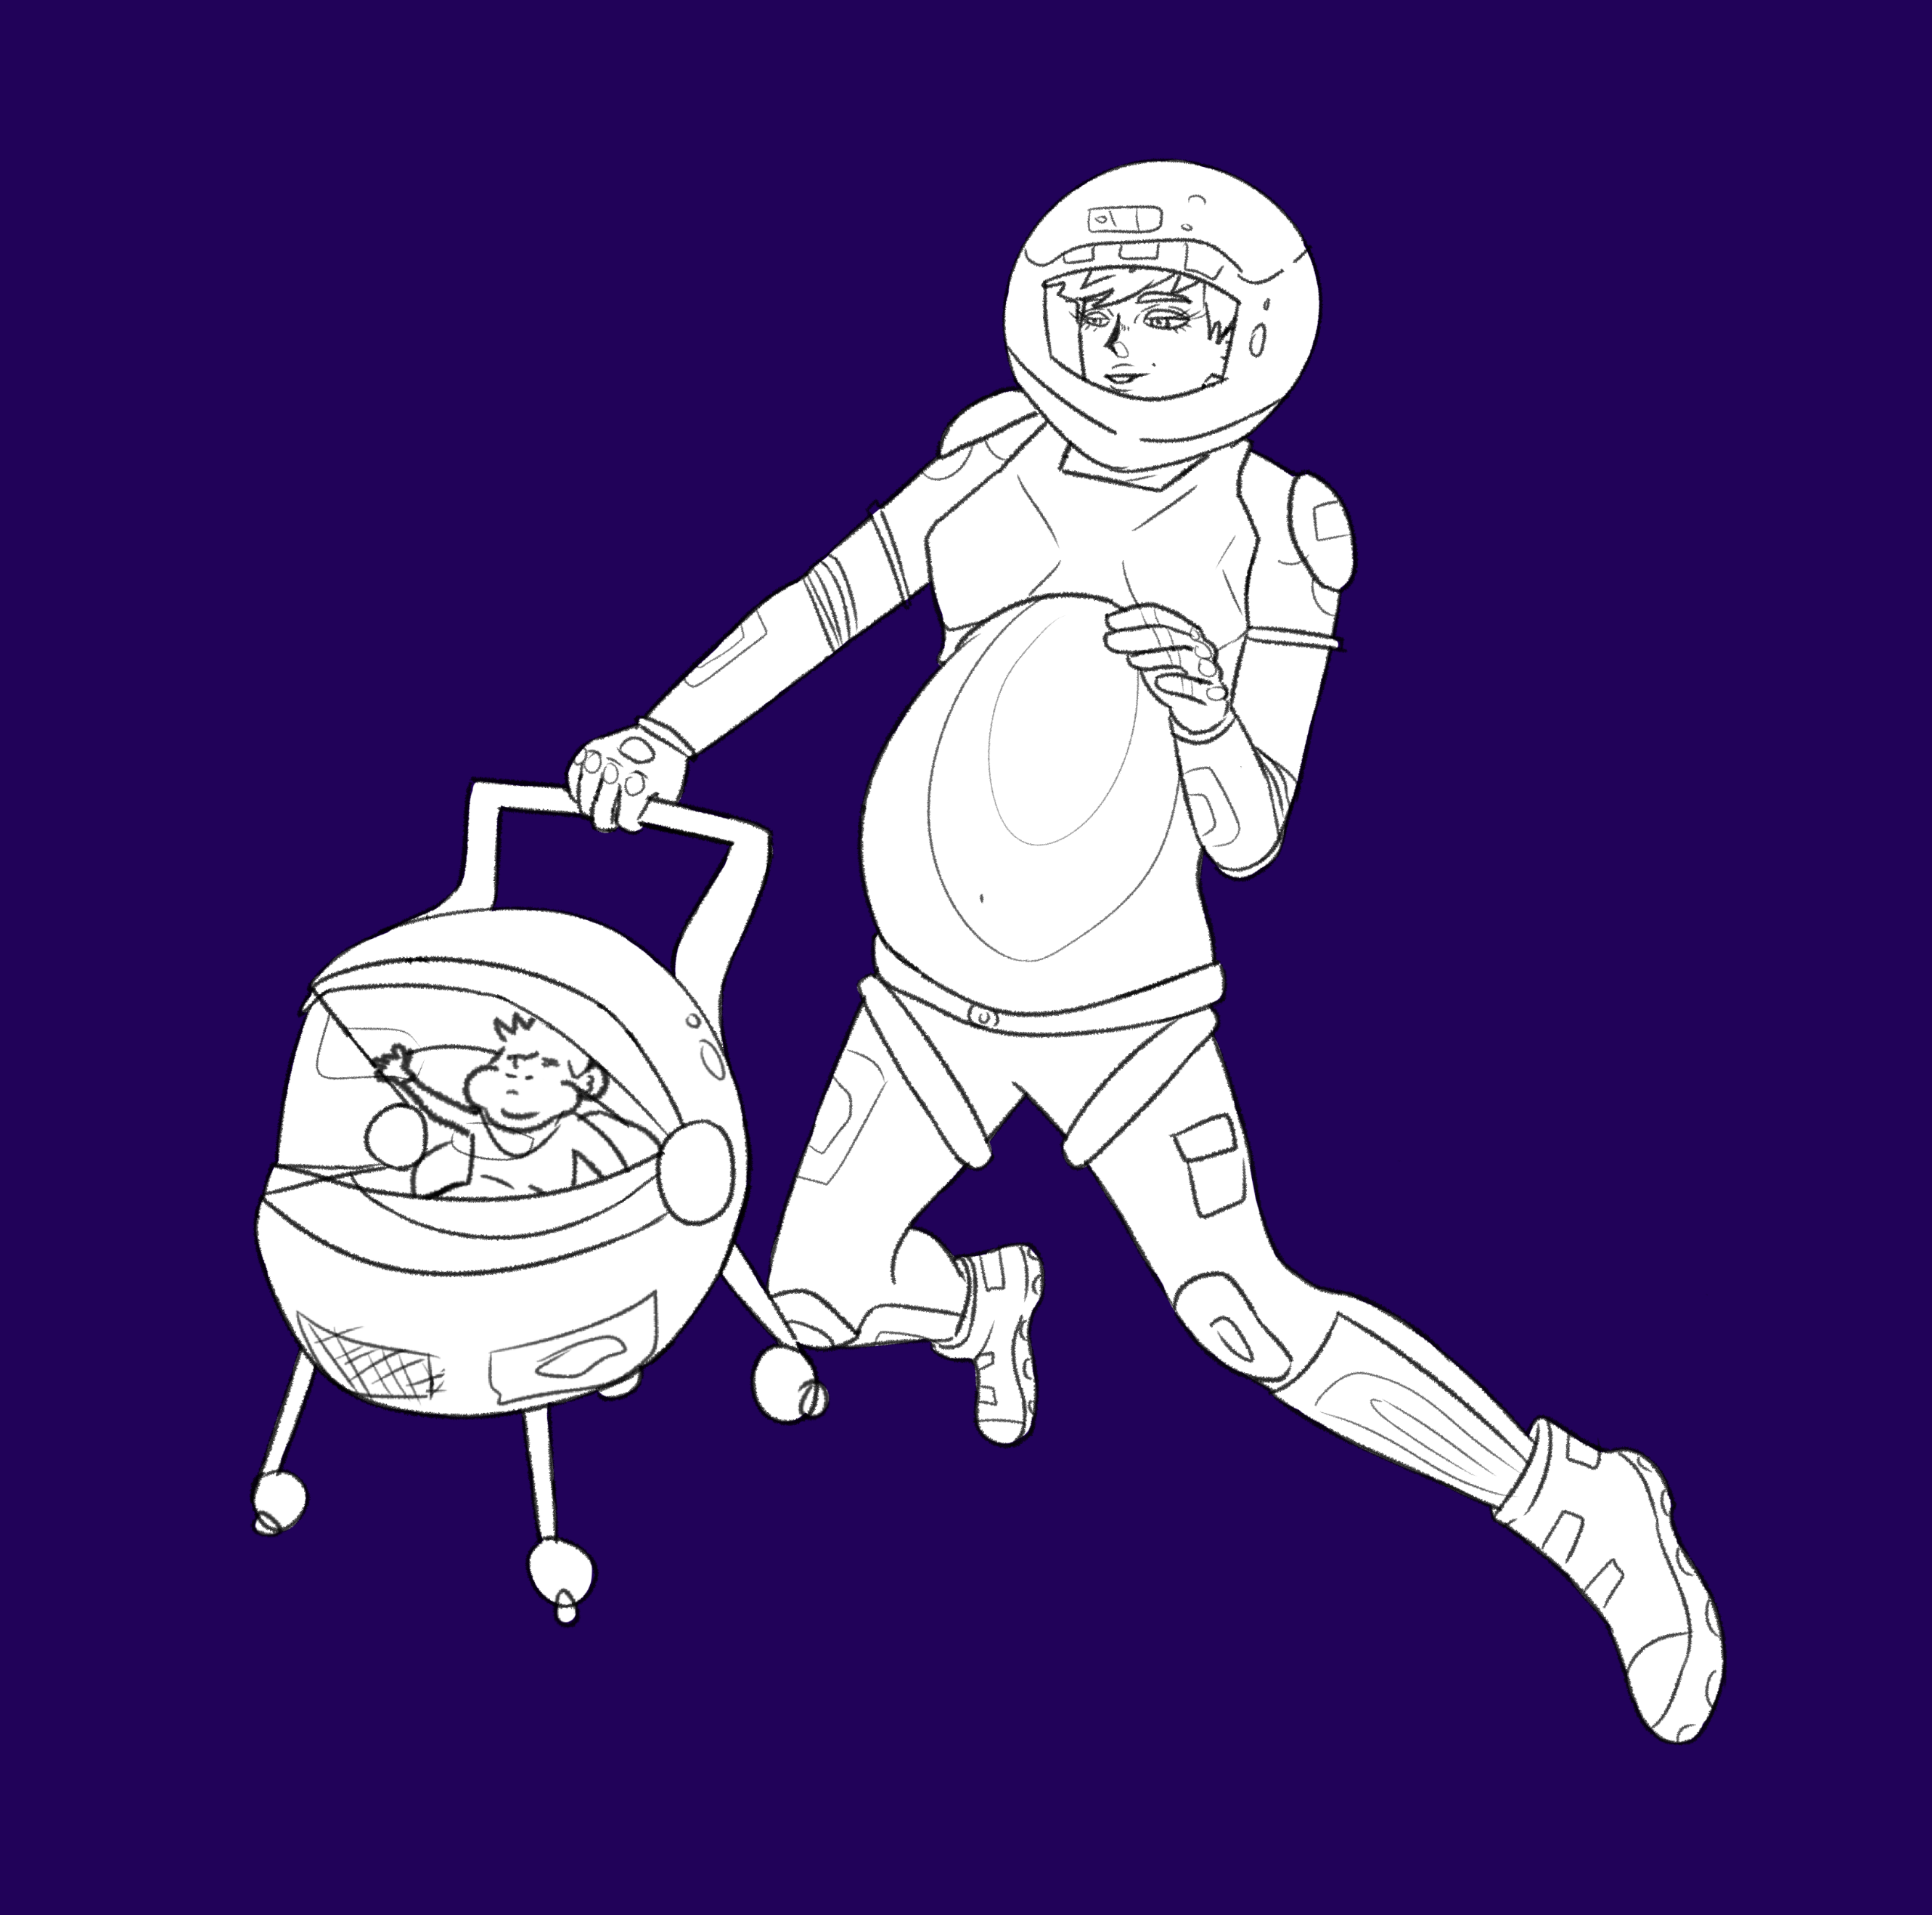 Pregnant mum floating in space with baby in space stroller